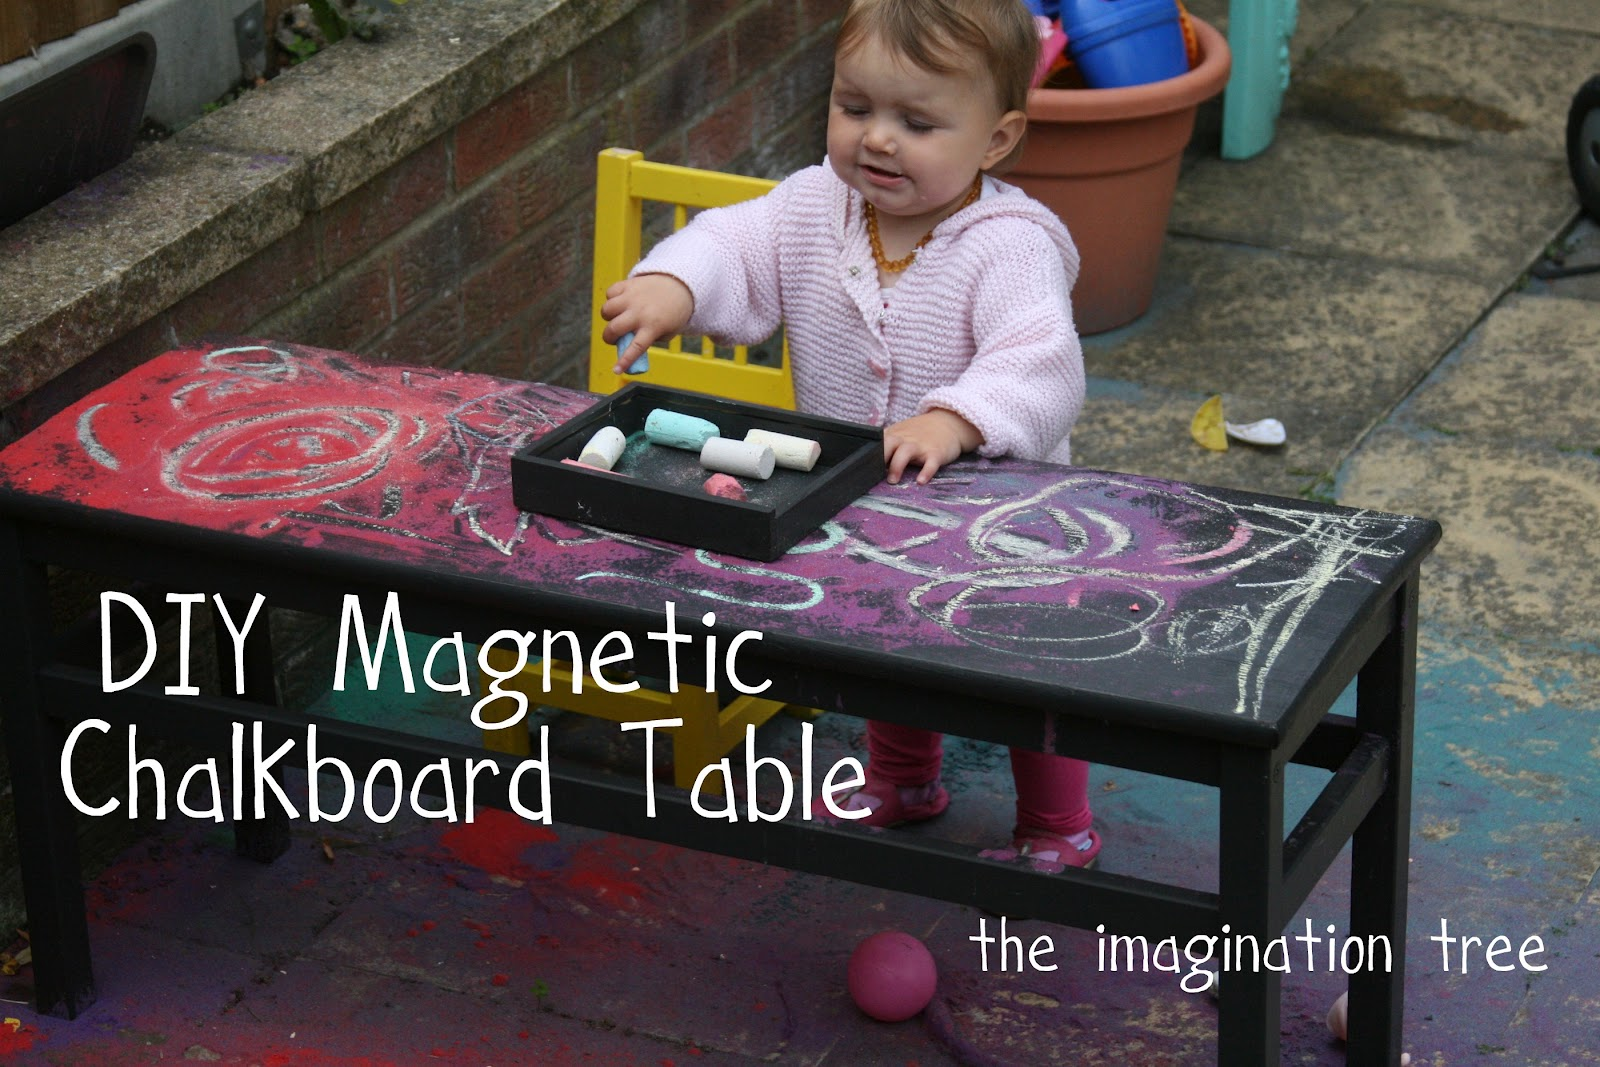 DIY Magnetic Chalkboard Table The Imagination Tree